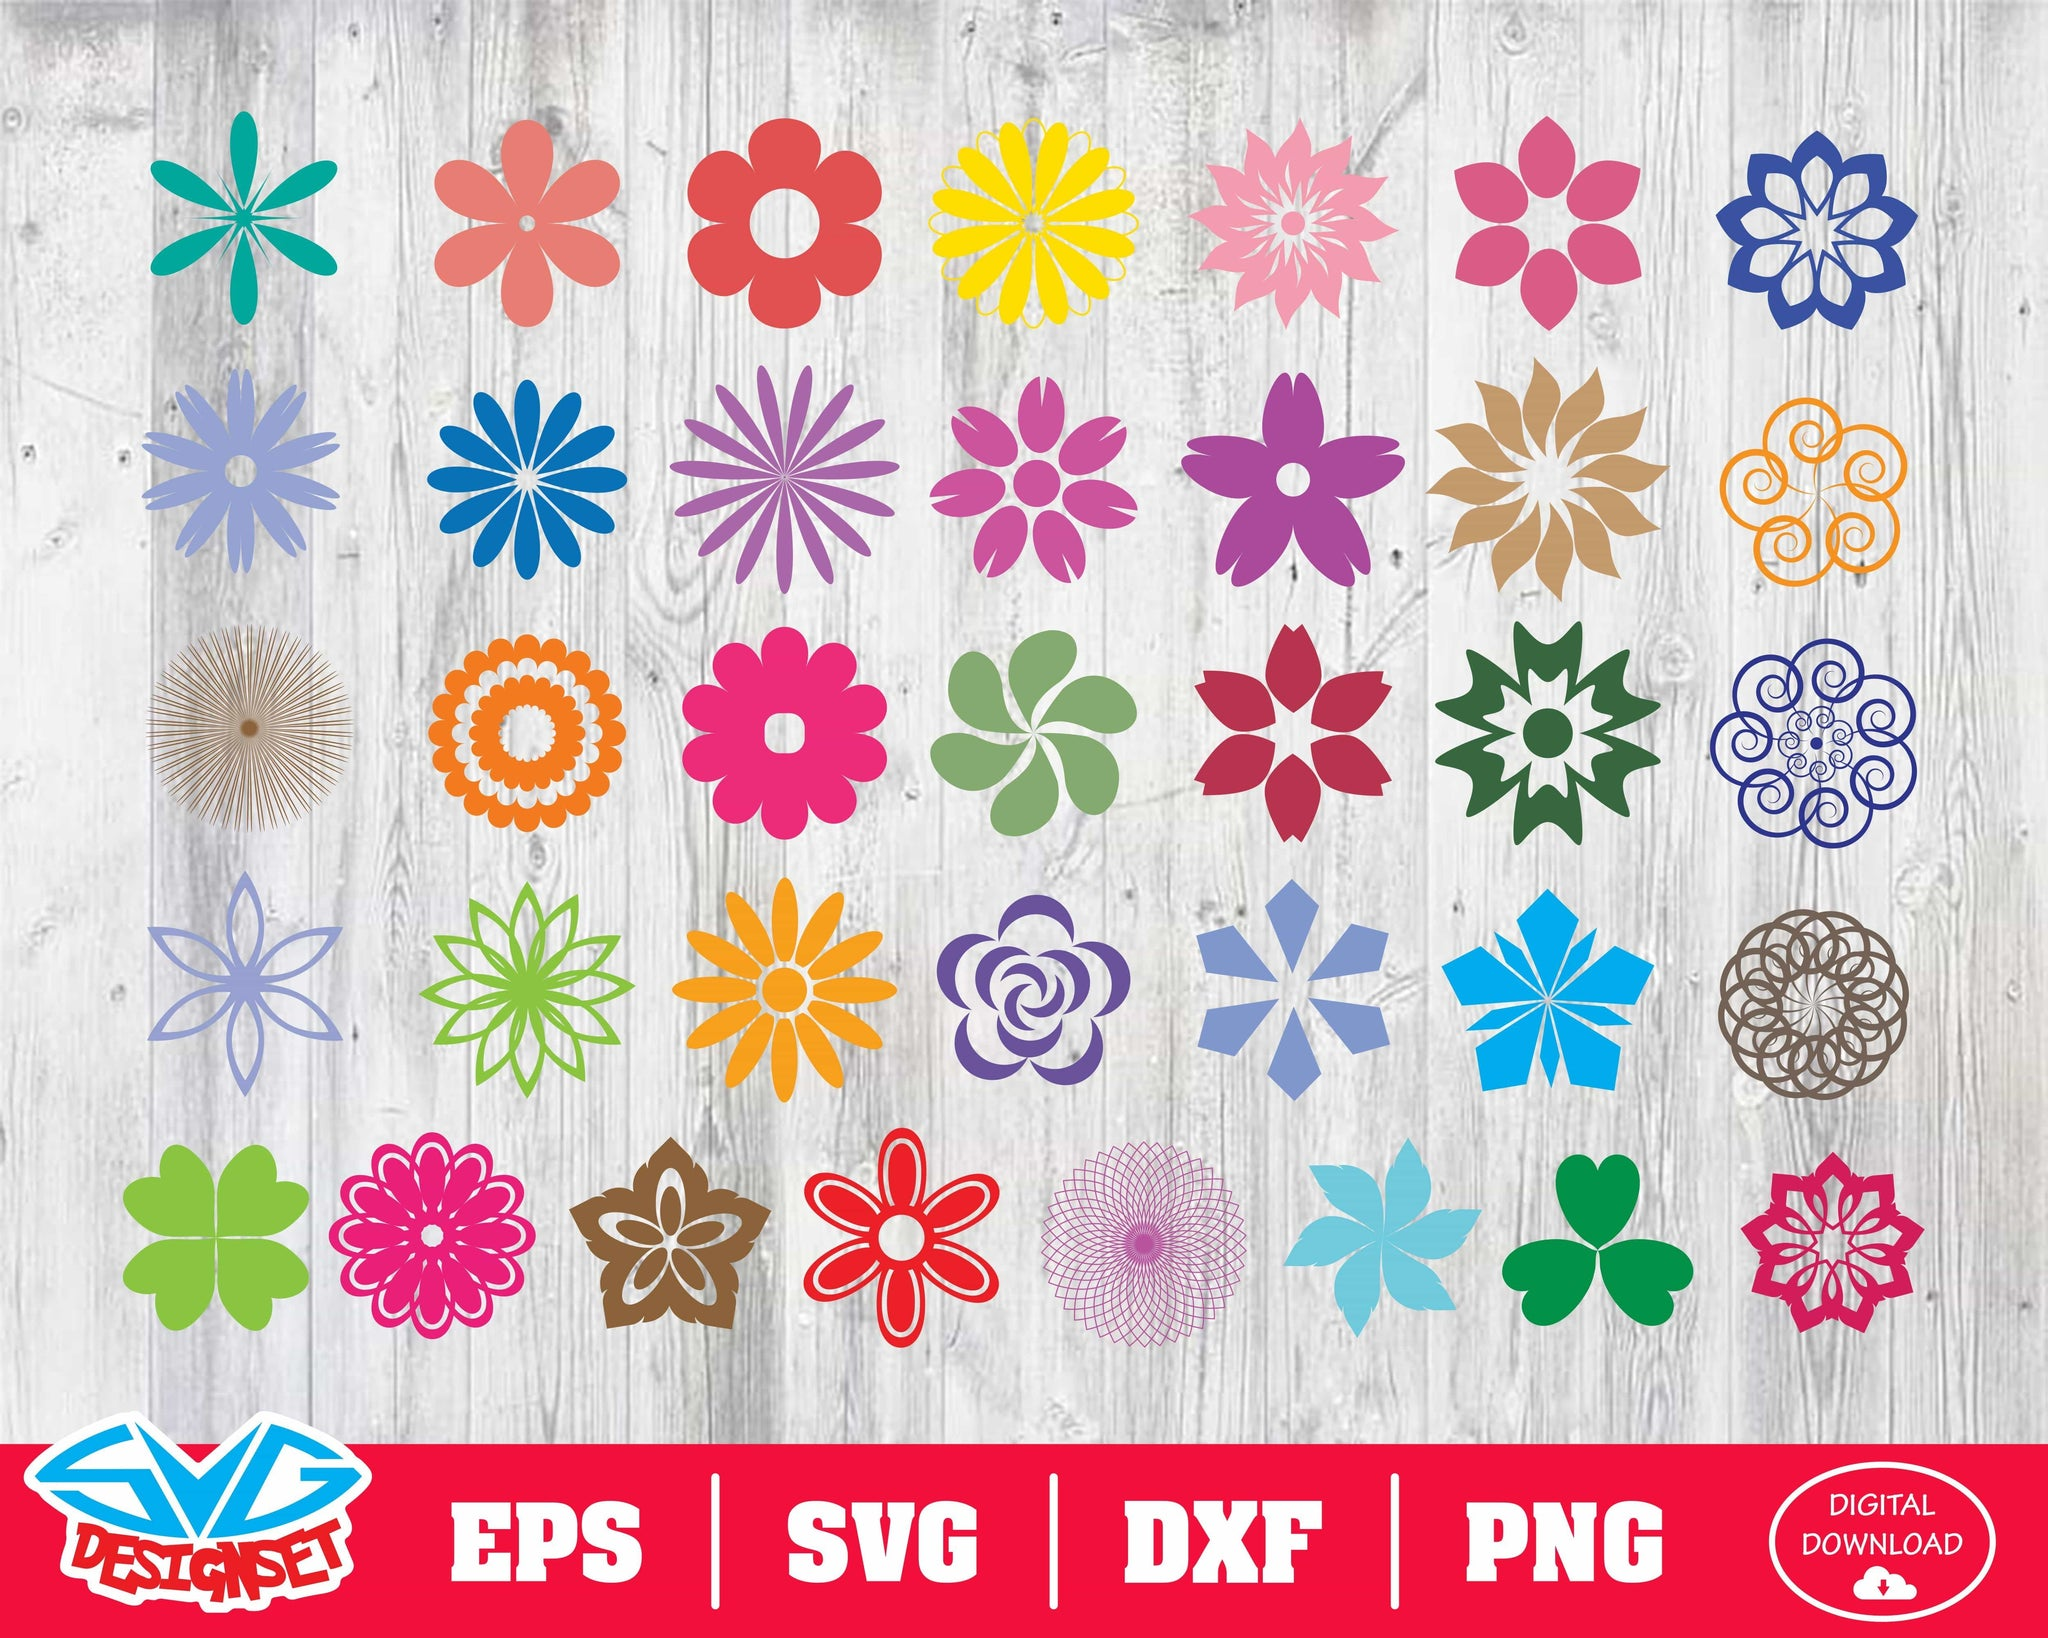 Flower Svg, Dxf, Eps, Png, Clipart, Silhouette and Cutfiles #7